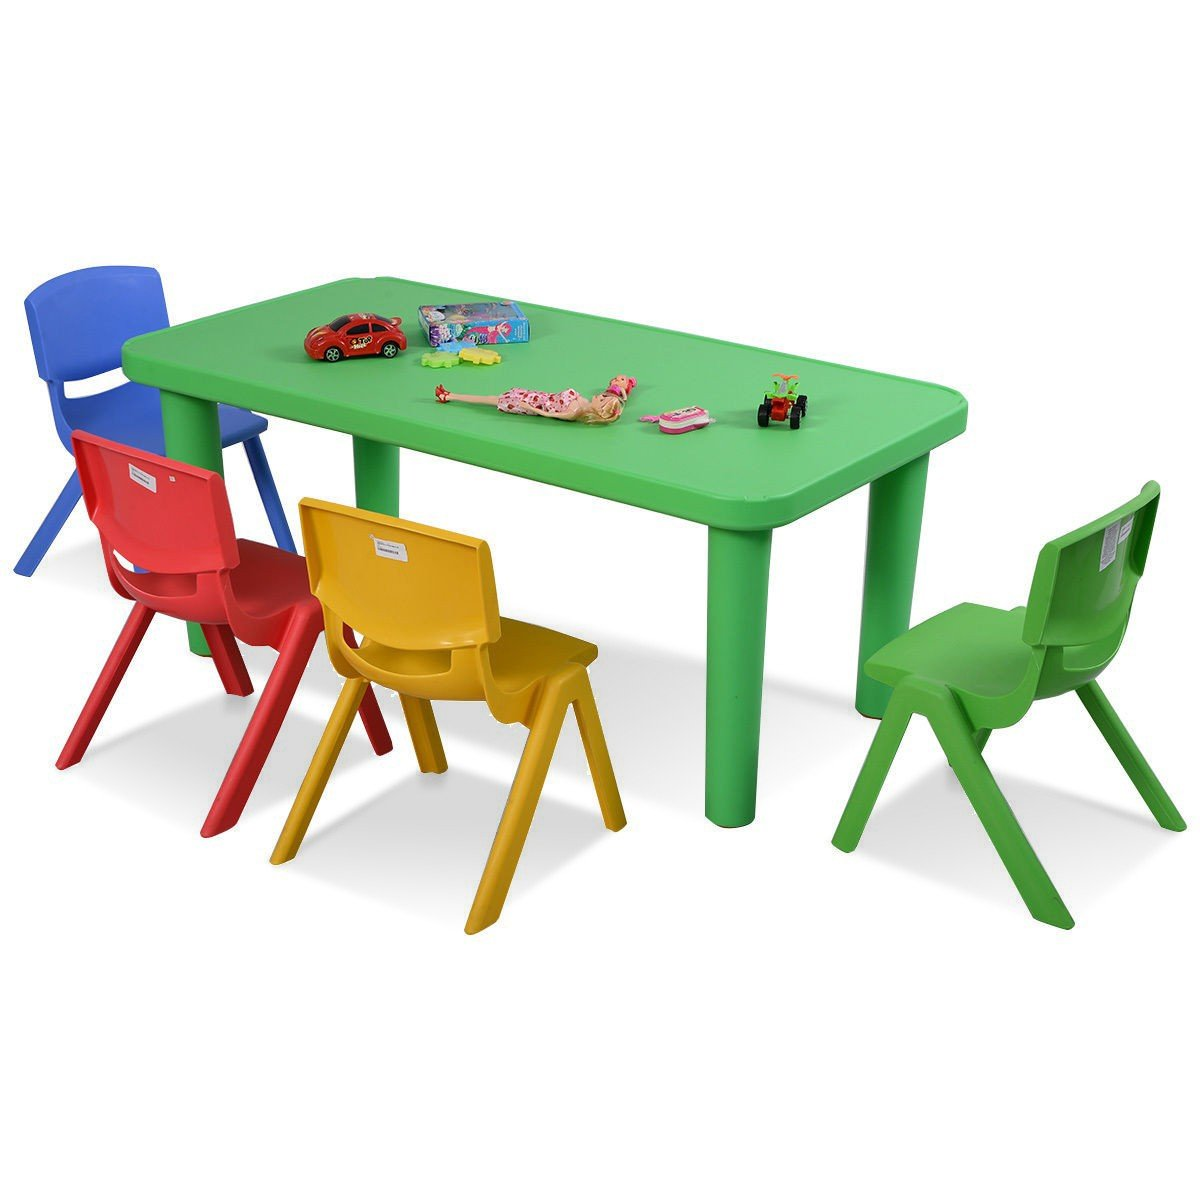 MD Group Kids Table Set Light-weight Colorful Plastic Table and 4 Chairs Children Furniture